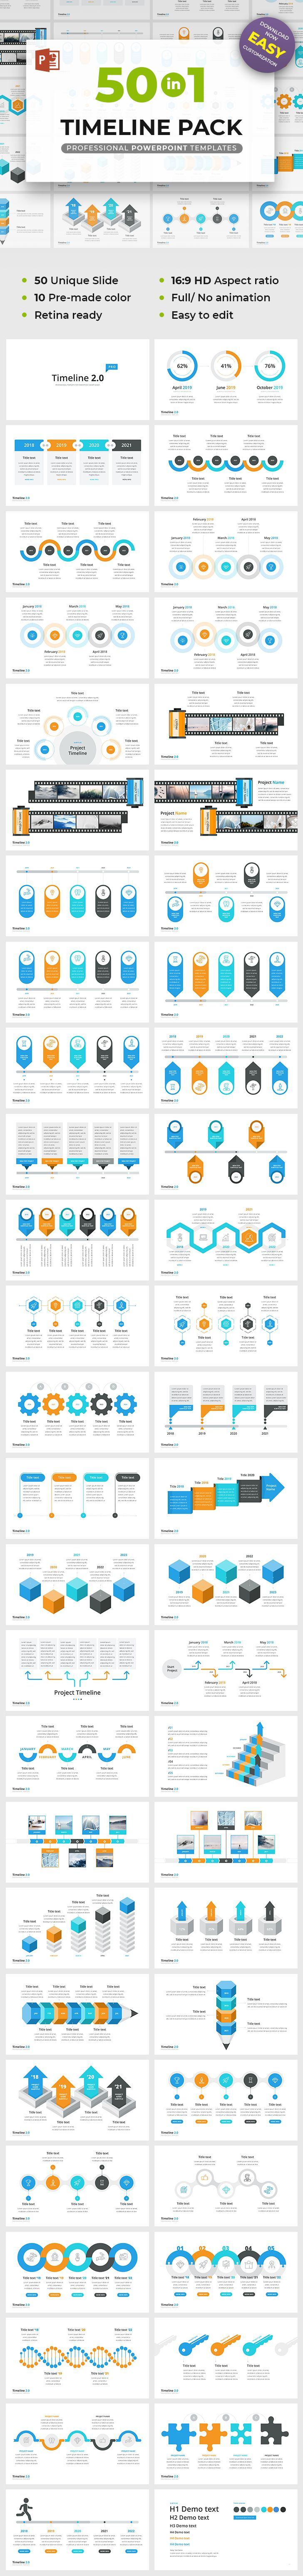 54 best powerpoint template images on pinterest ui ux animation download now timeline pack 50 in 1 for powerpoint 50 unique templates 10 pre made color xml files 169 hd aspect ratio easy to edit color text size toneelgroepblik Images